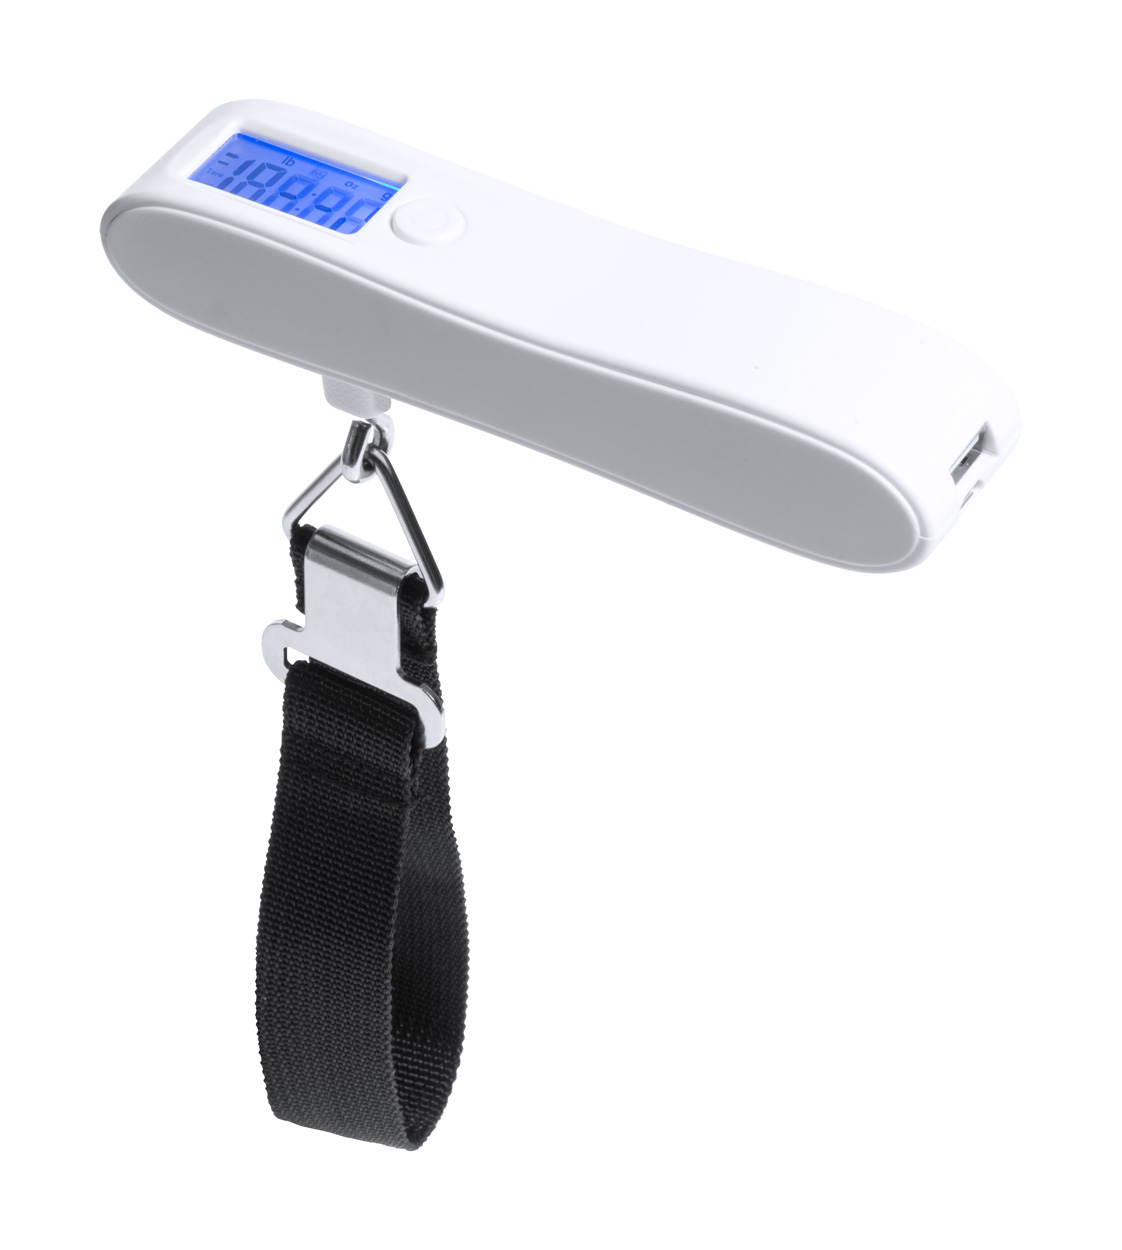 Hargol luggage scale with power bank